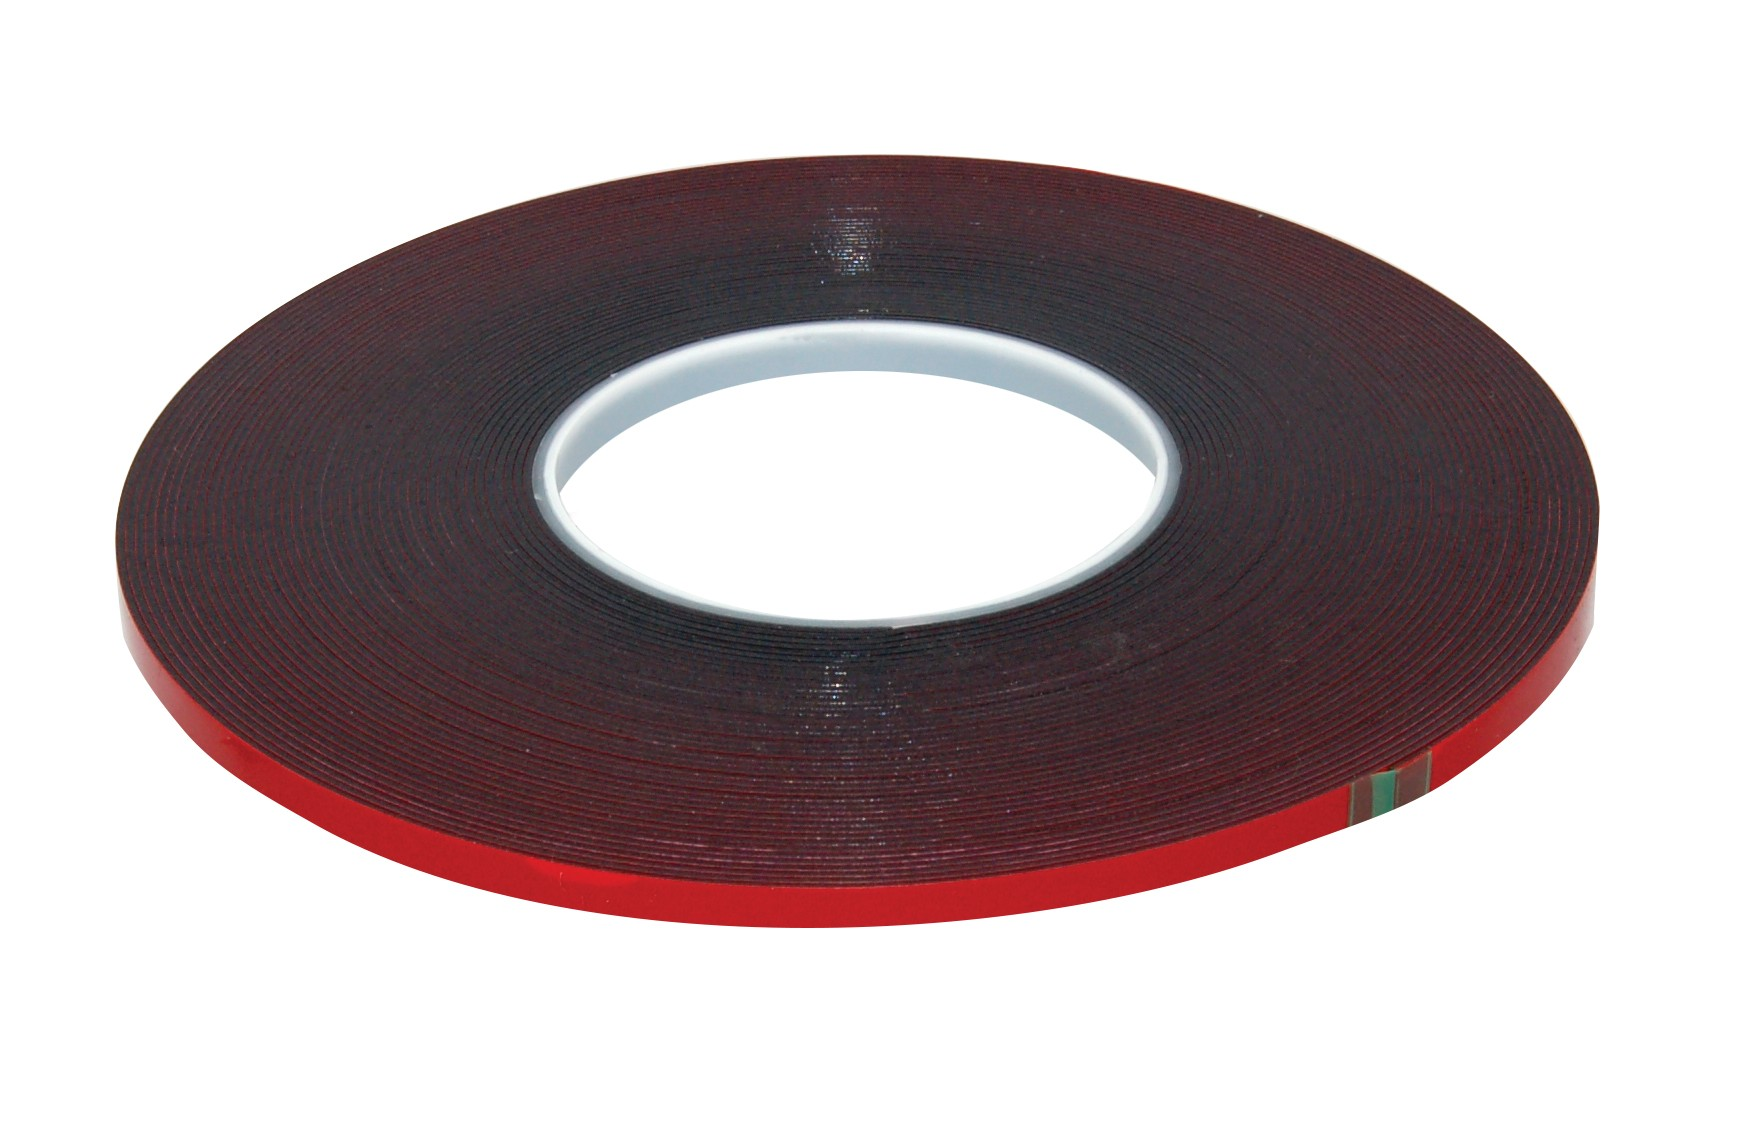 "Double Face Tape - 1/4"" x 60' - Red Liner"